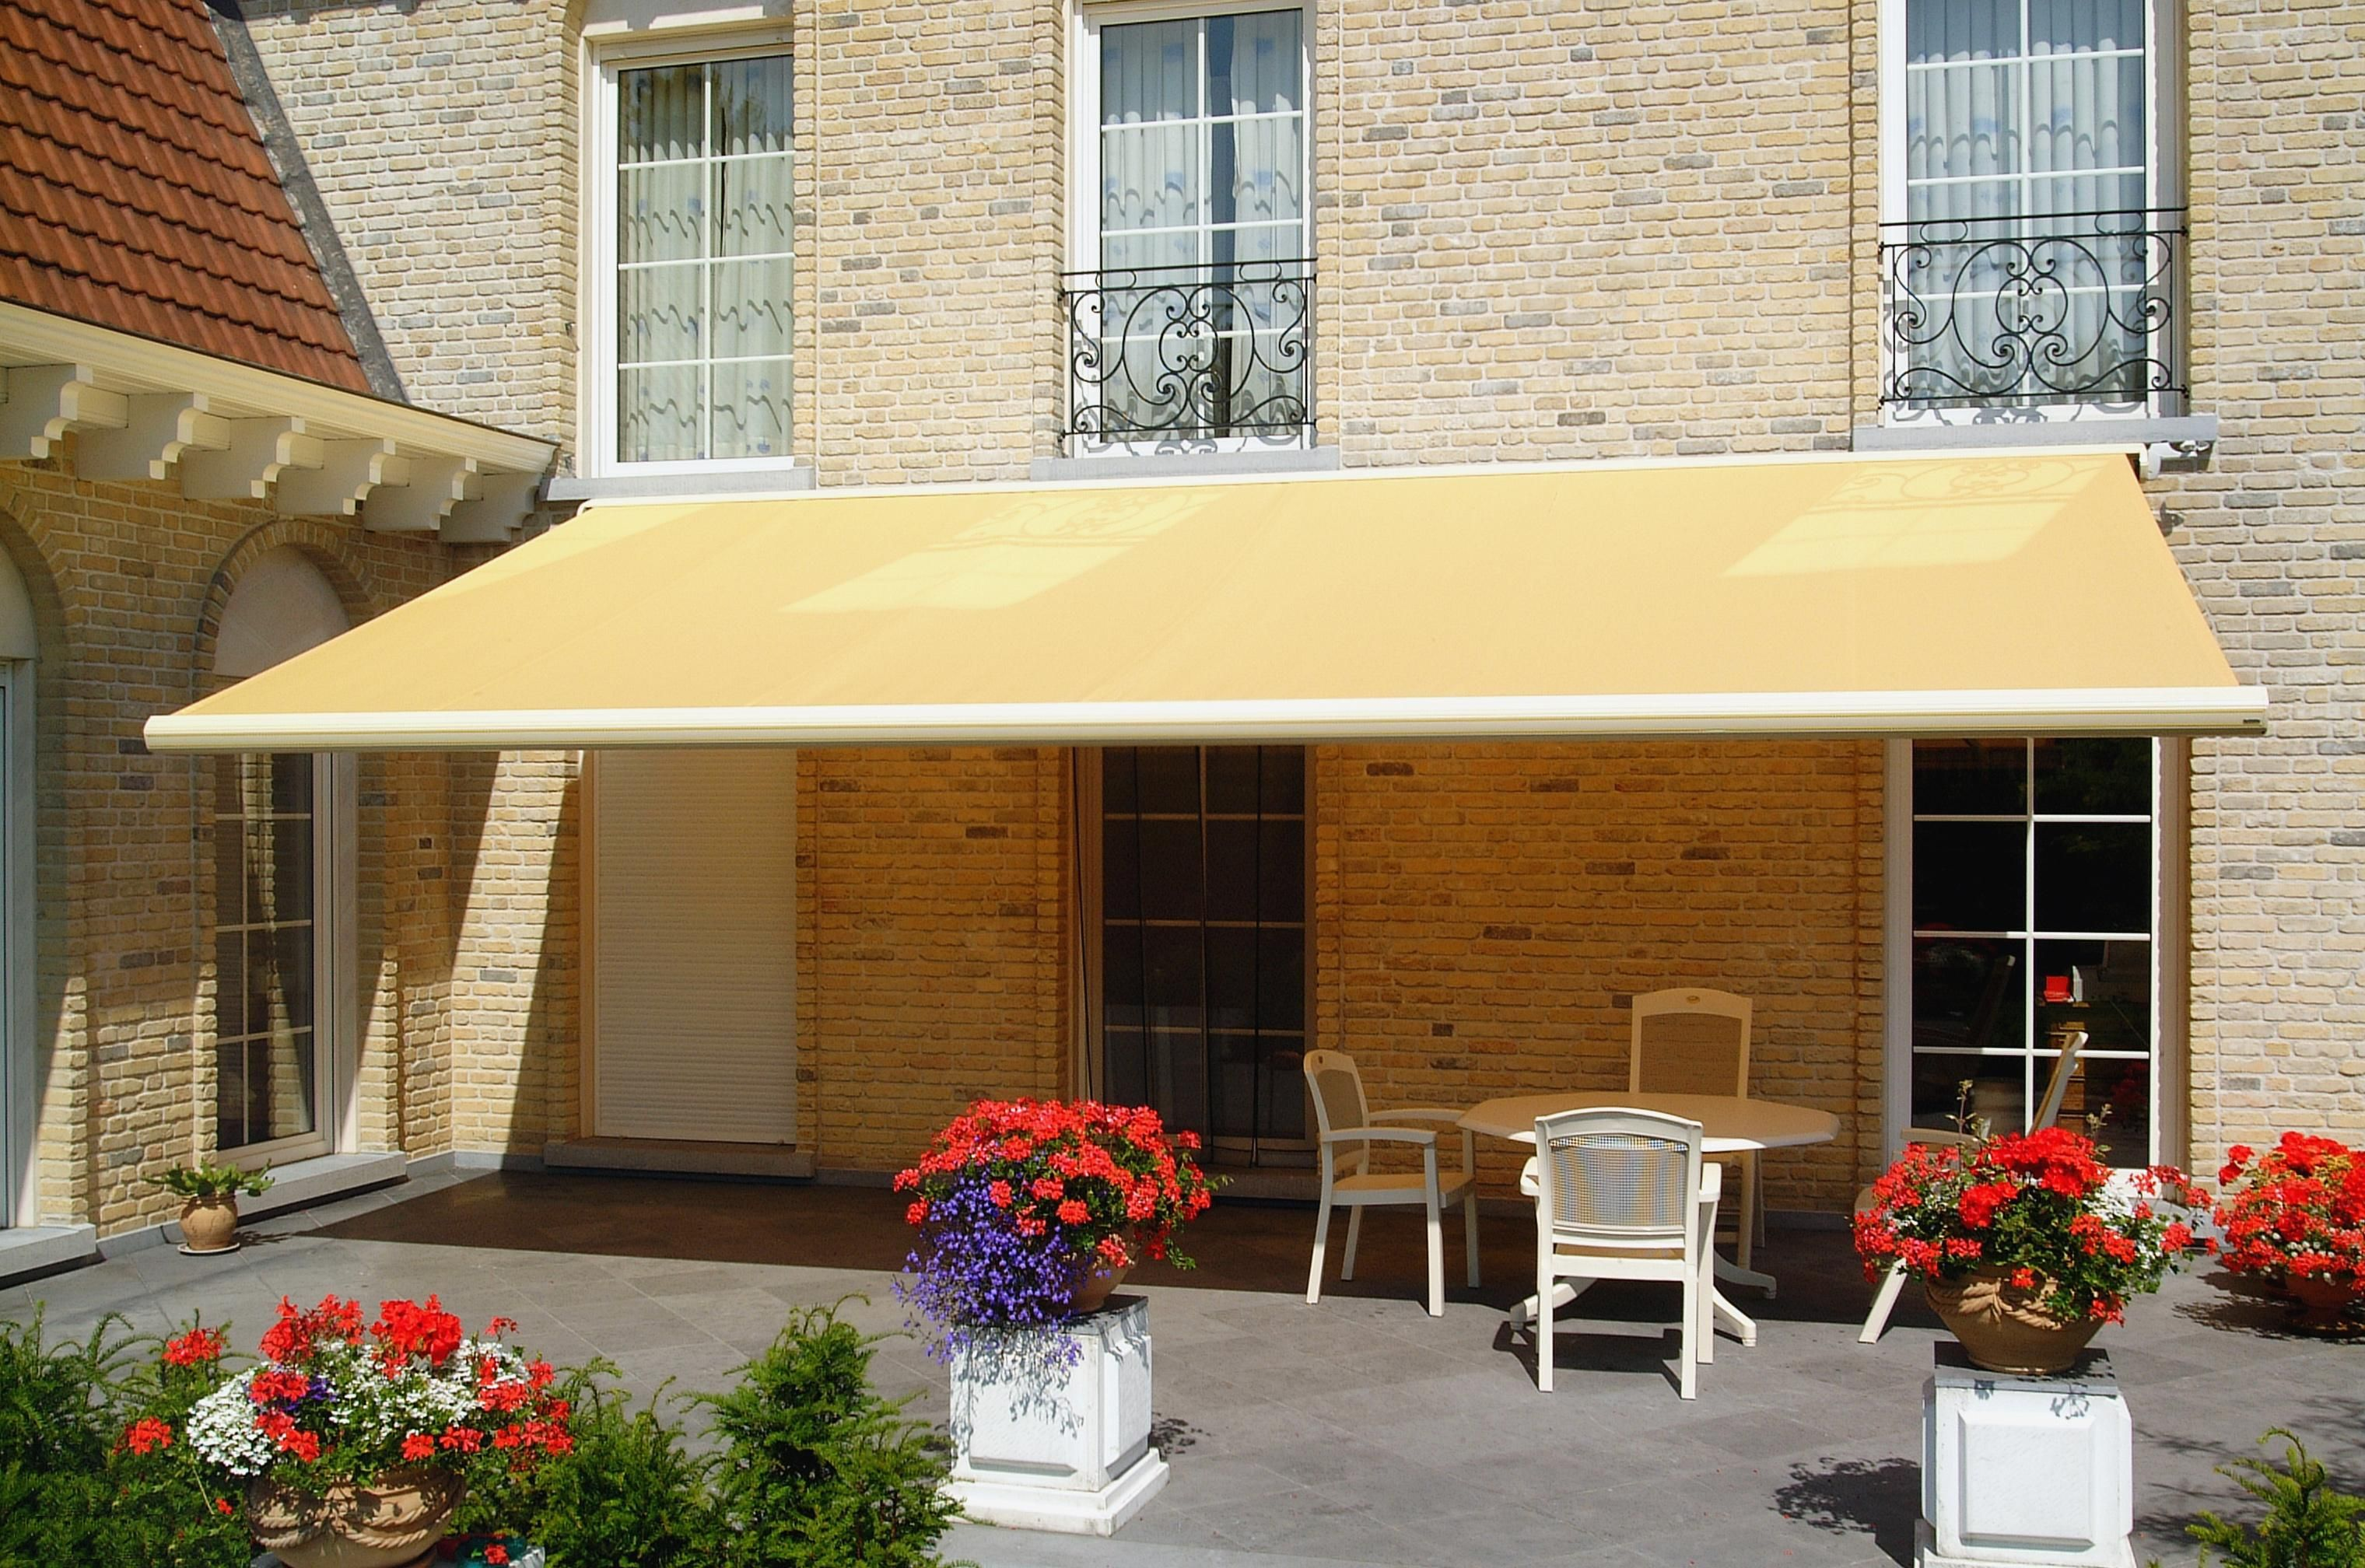 models in nuimage nj five retractable patio shown to economical pin lineup price point and assuring open the every awning from this includes ranging application cassette closed full awnings